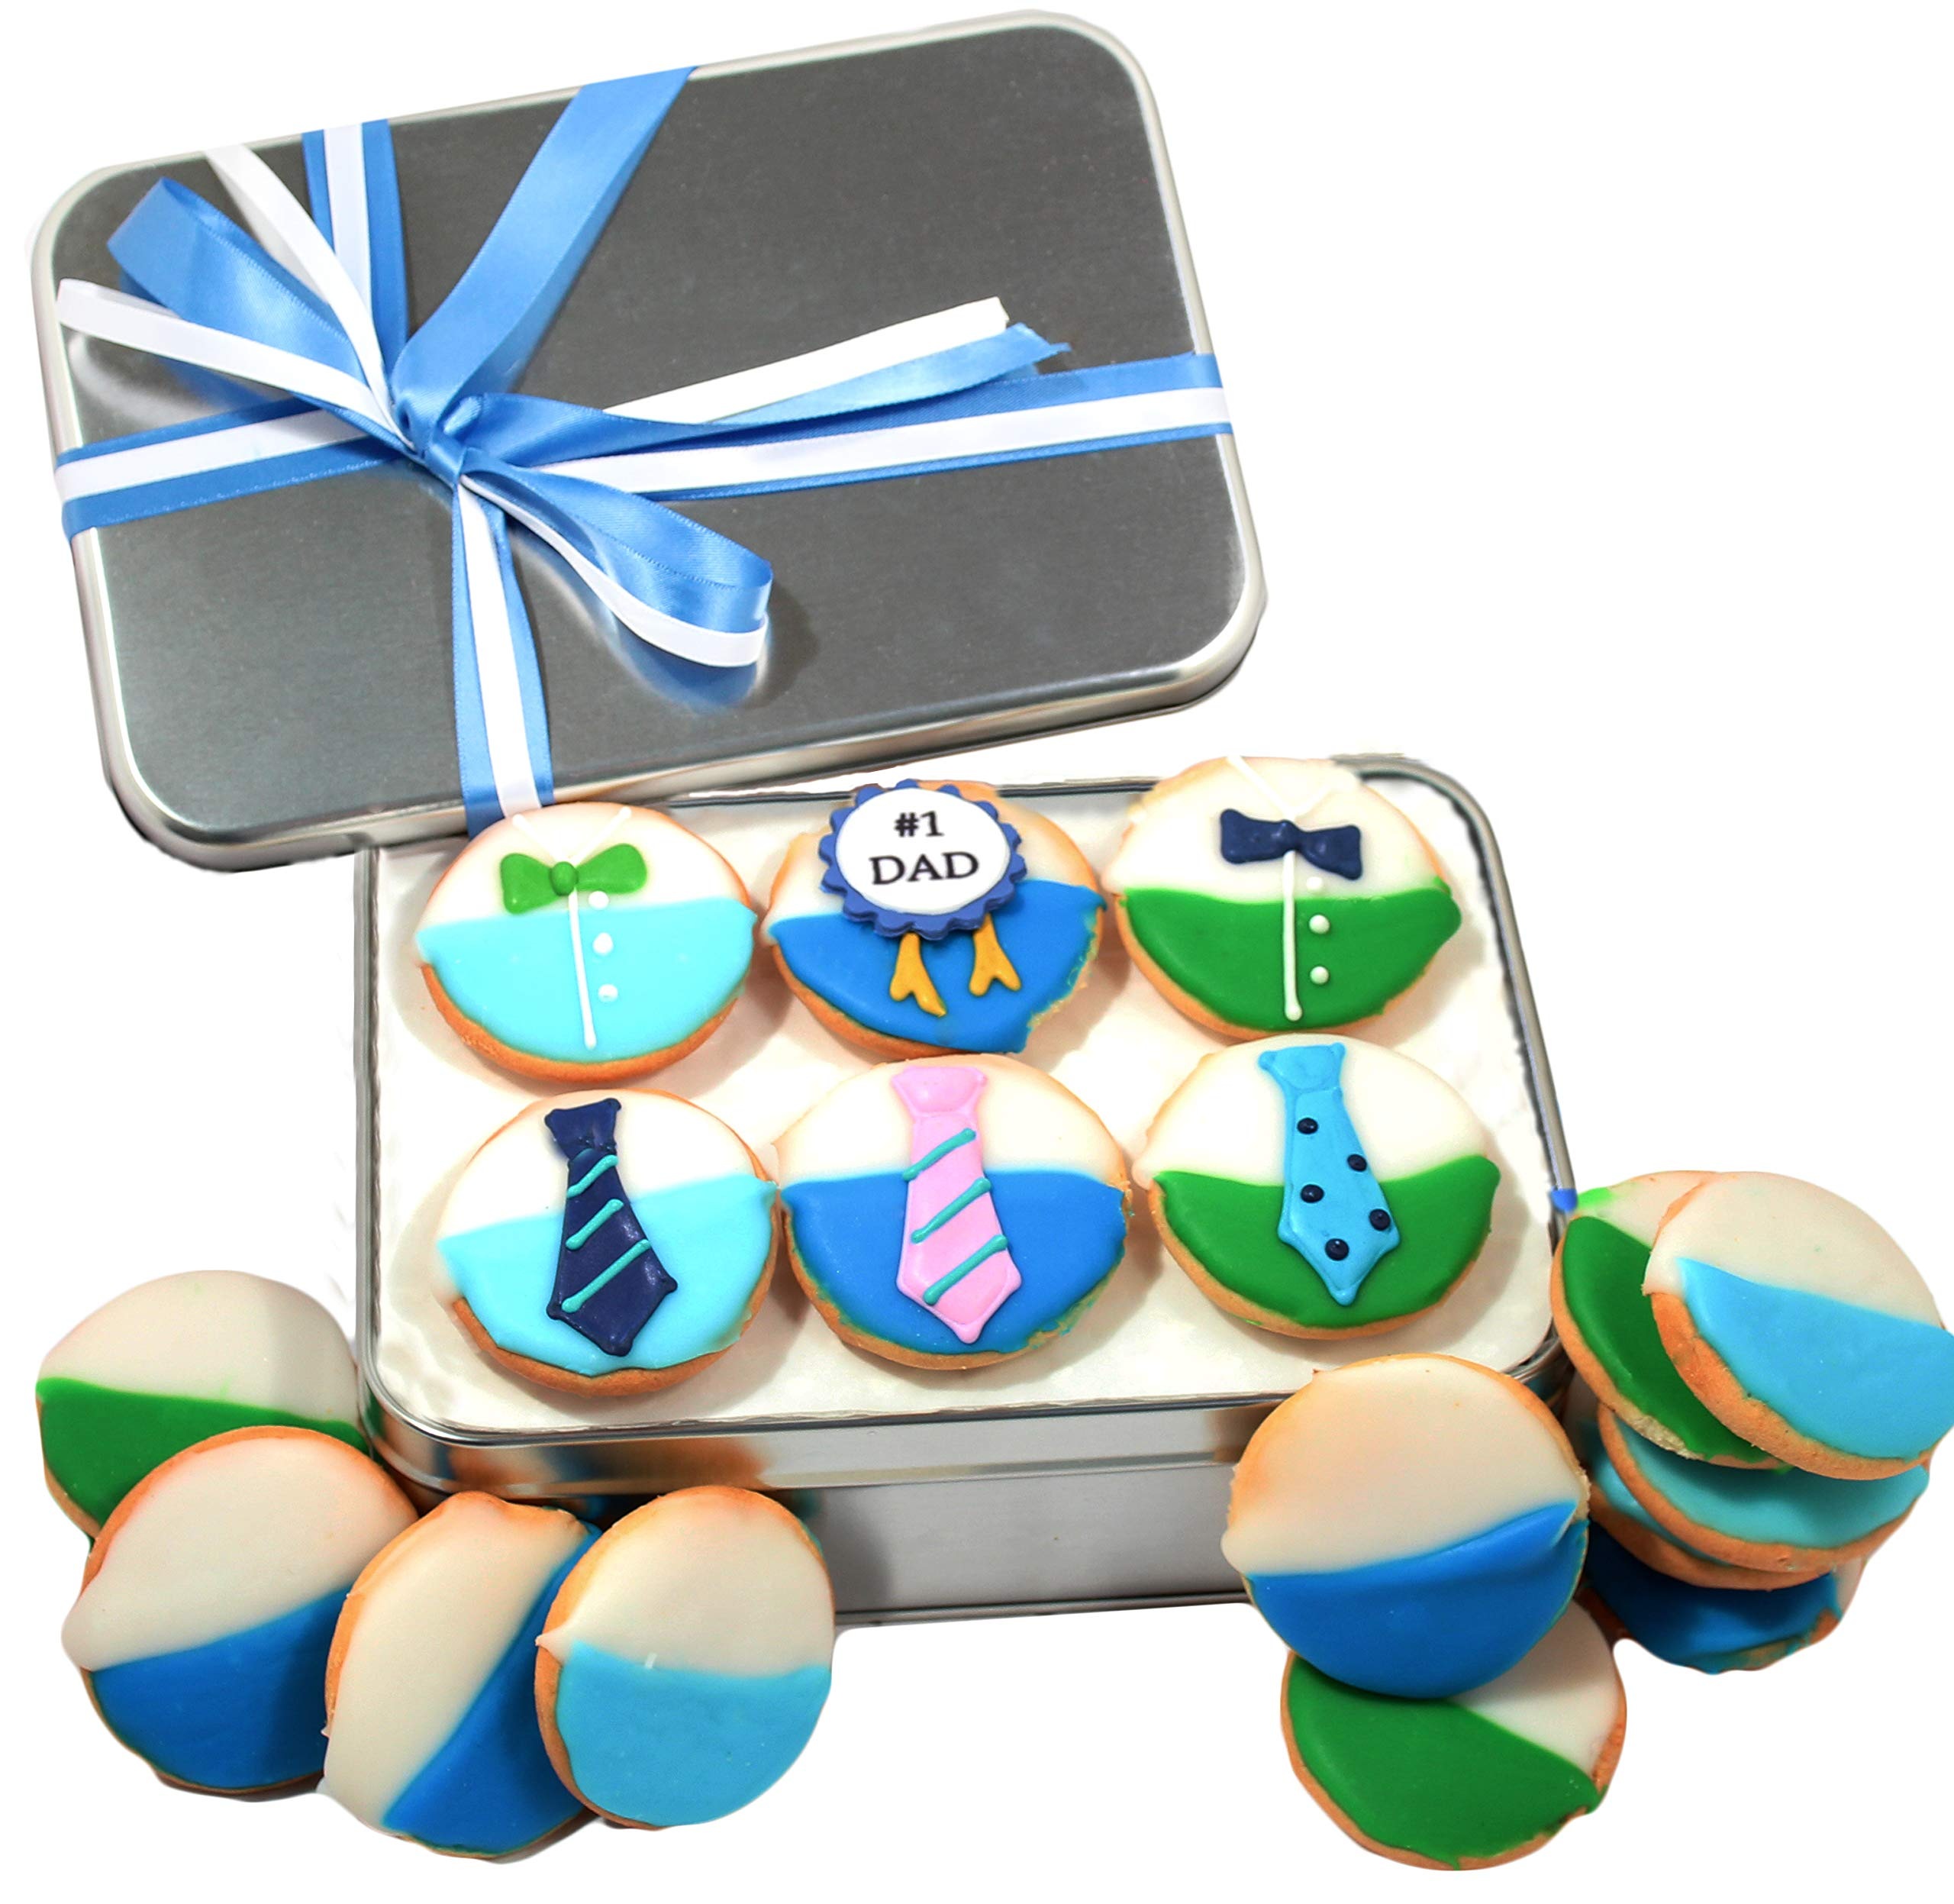 Fathers Day Cookie gift basket Gourmet Food Tin filled with 18 individually hand decorated designed DAD # colored black and whites Great Gift idea for Father Brother Son Husband PRIME DELIVERY by Custom Cookies